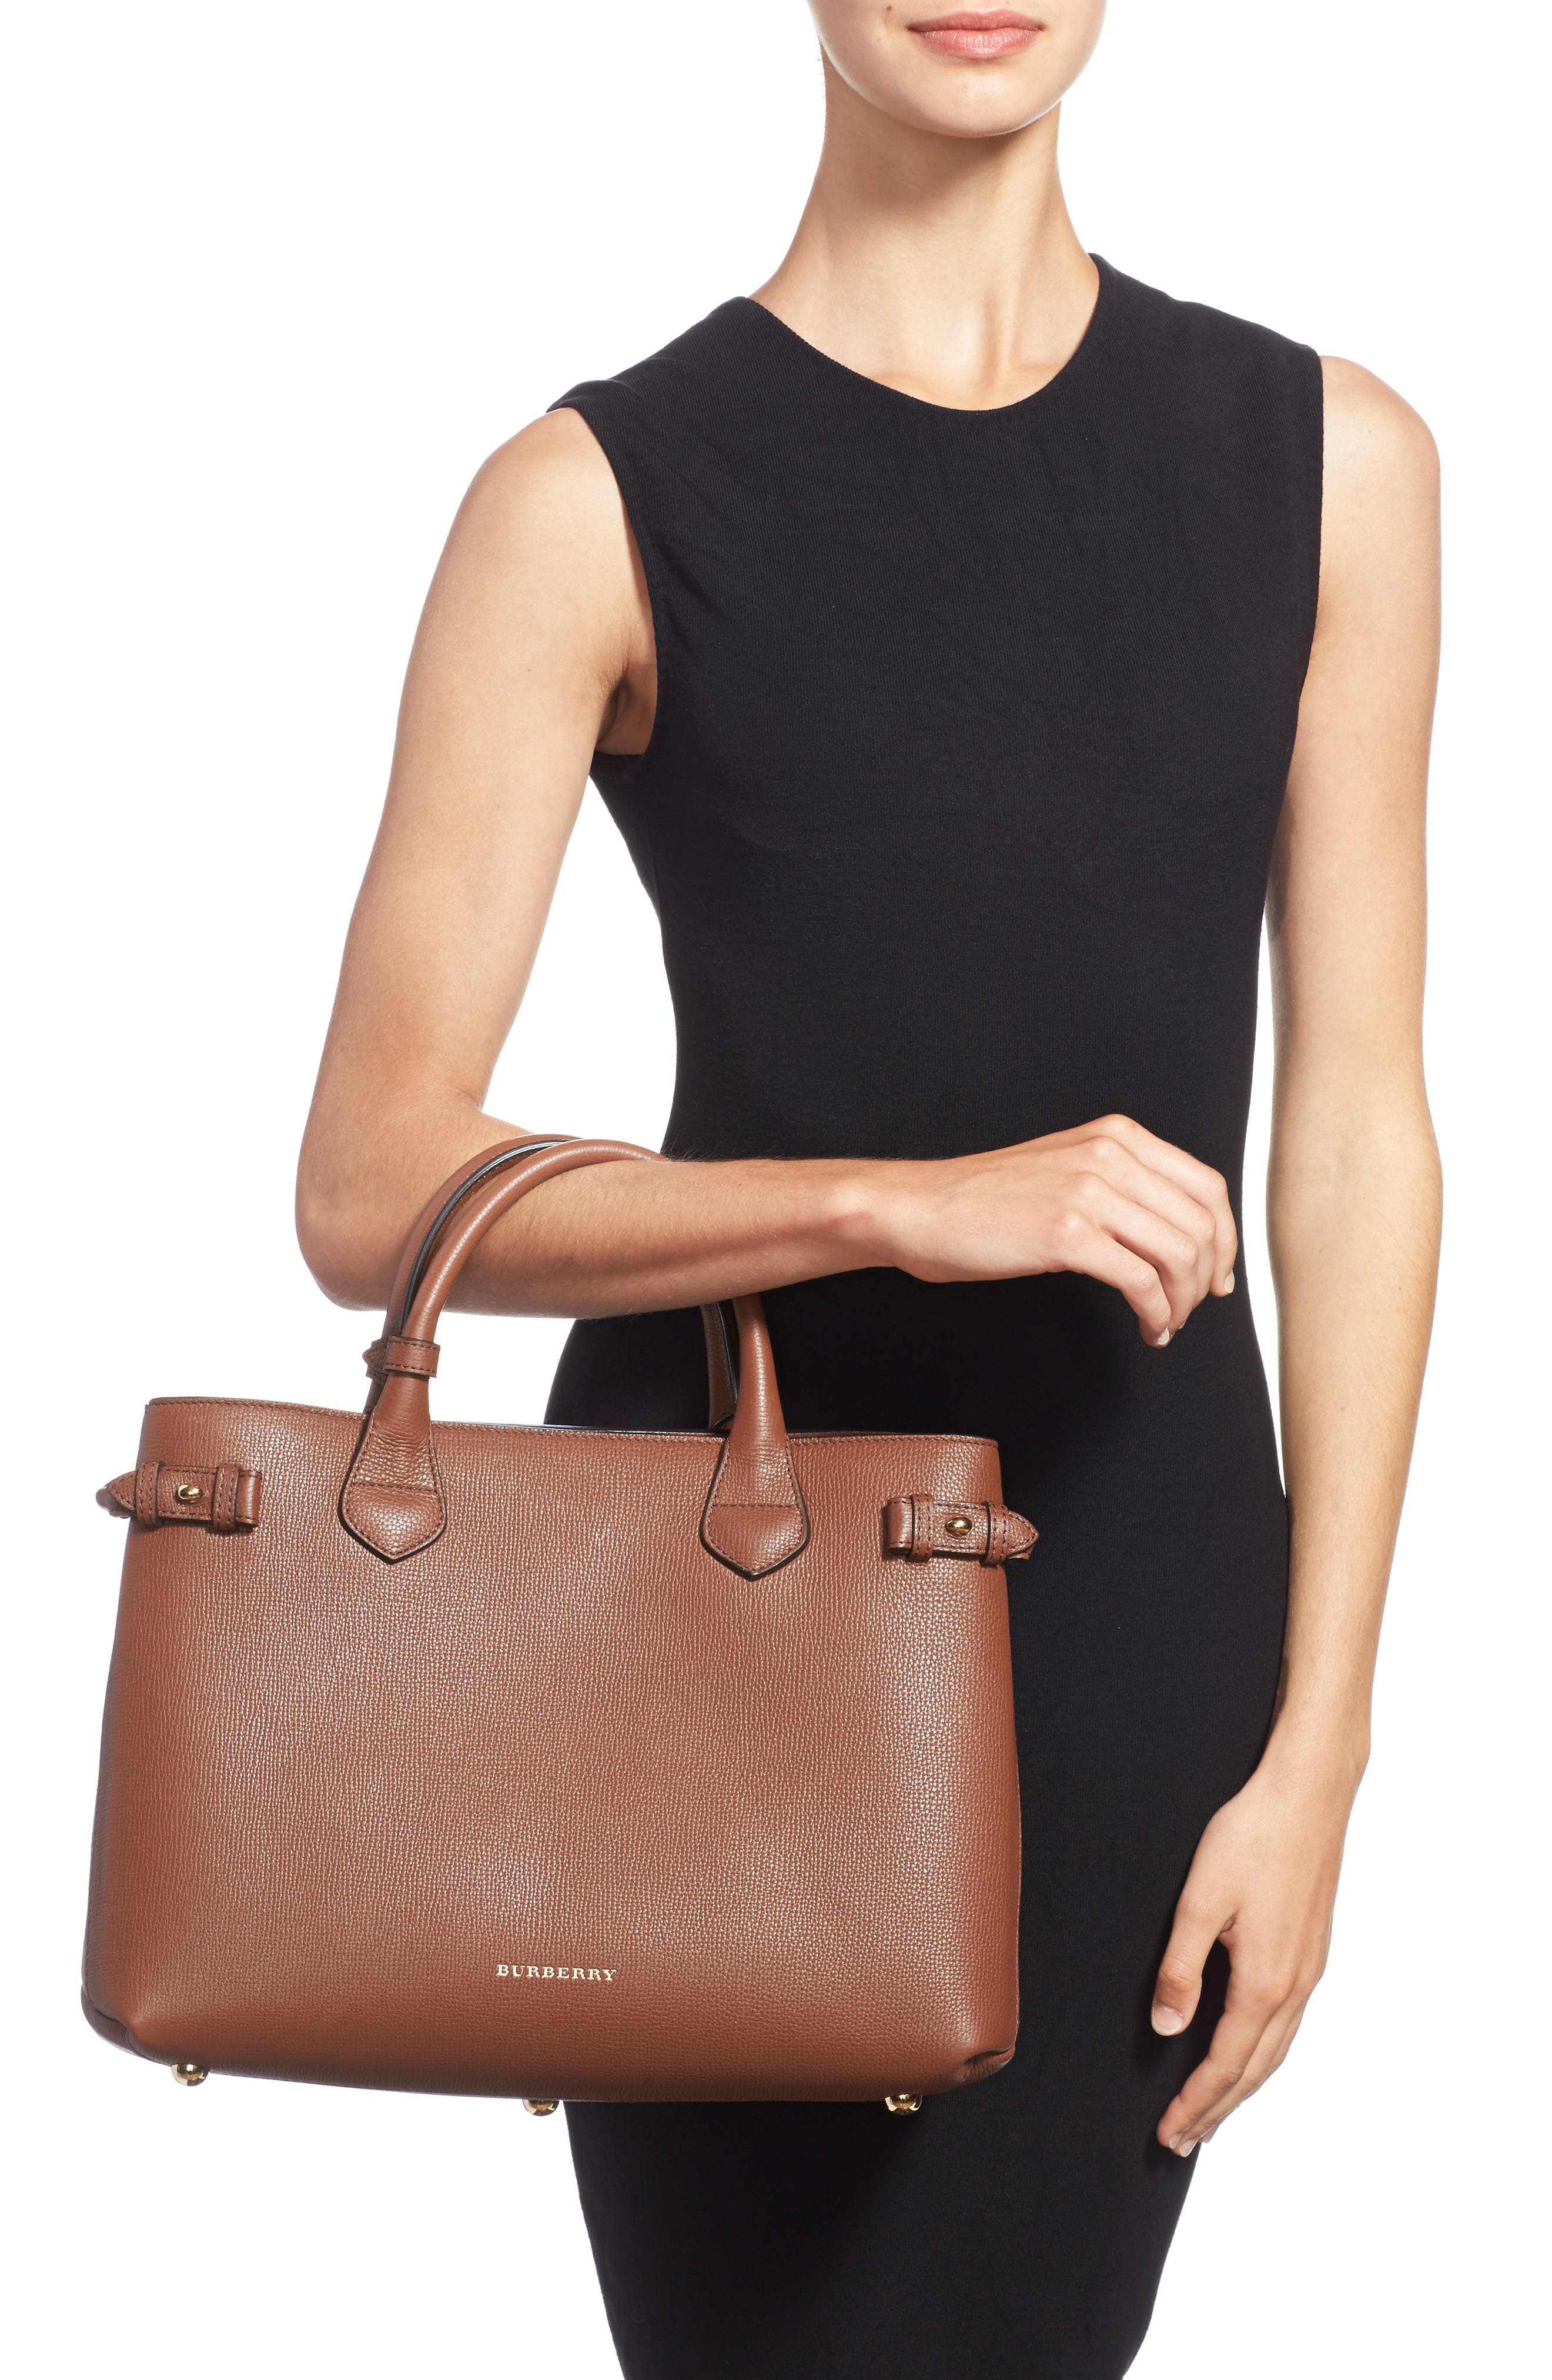 Medium Banner House Check Leather Tote,                             Alternate thumbnail 8, color,                             251